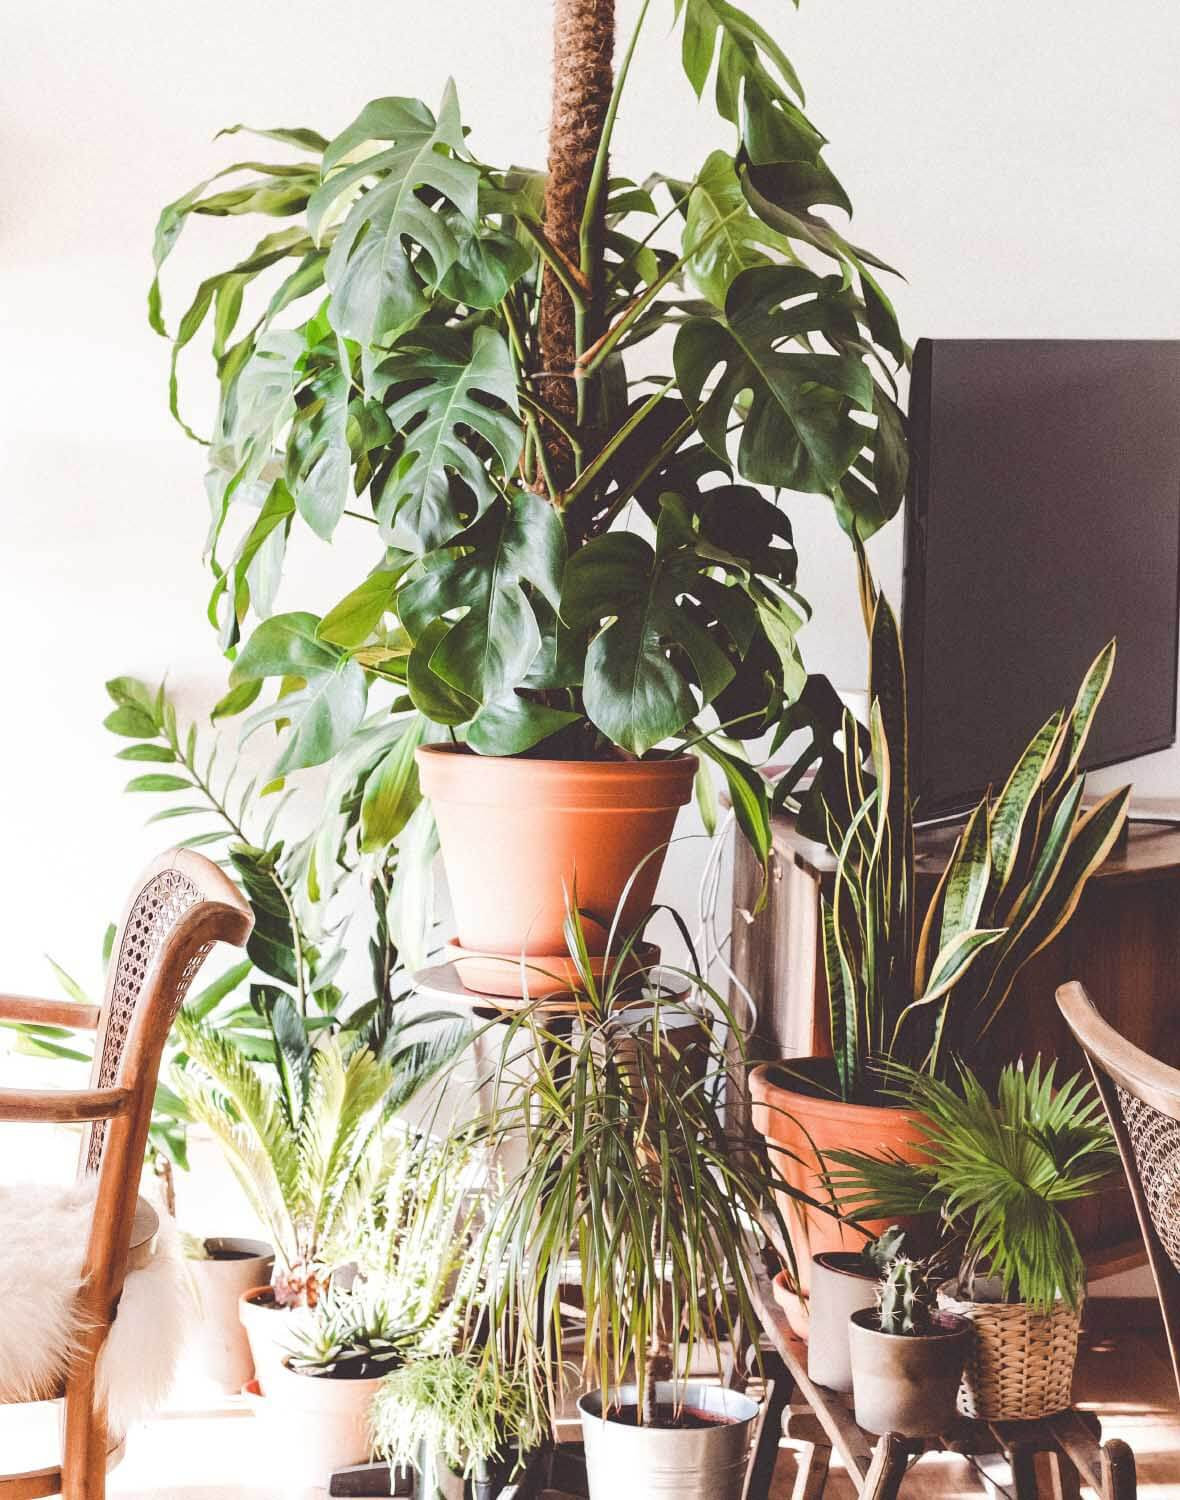 SysSiteAssets/img/article/inspiration/plants/plant_5.jpg